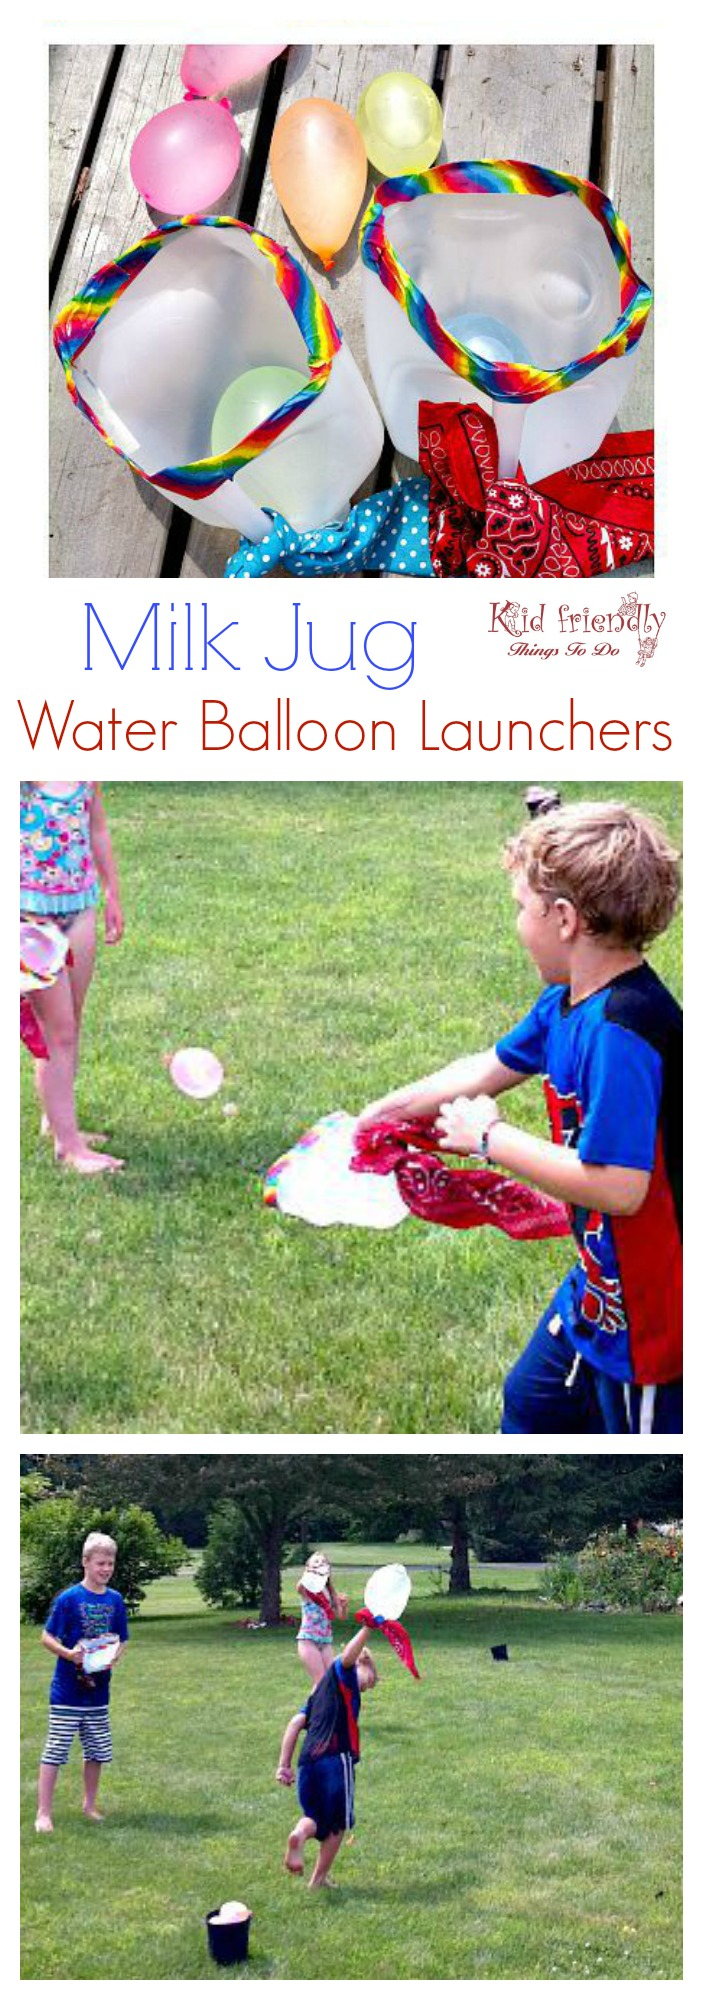 Diy milk jug water balloon launch outdoor summer game for kids for Fun balloon games for kids